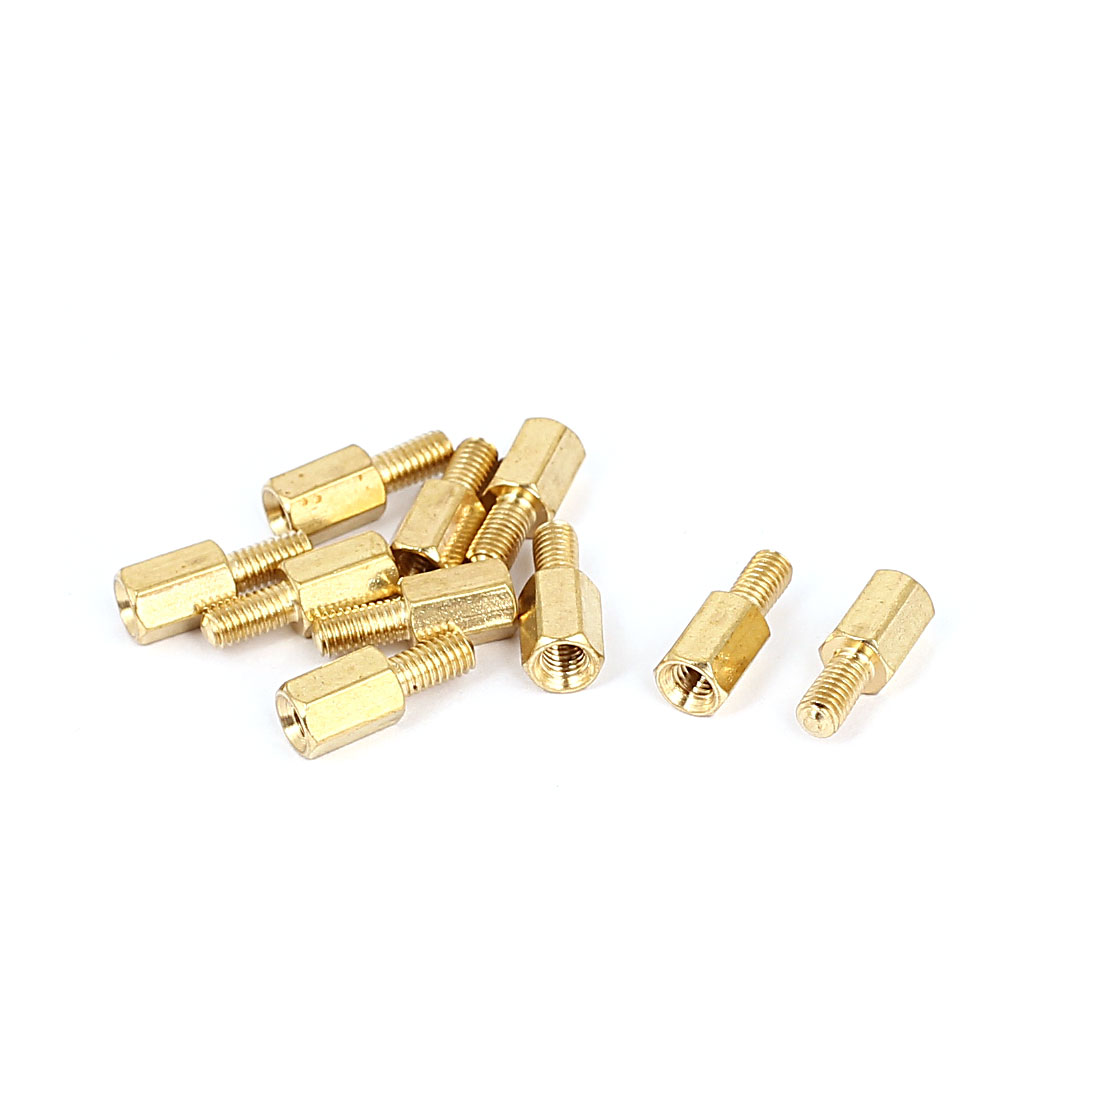 M3x7mm+6mm Male to Female Thread 0.5mm Pitch Brass Hex Standoff Spacer 10Pcs